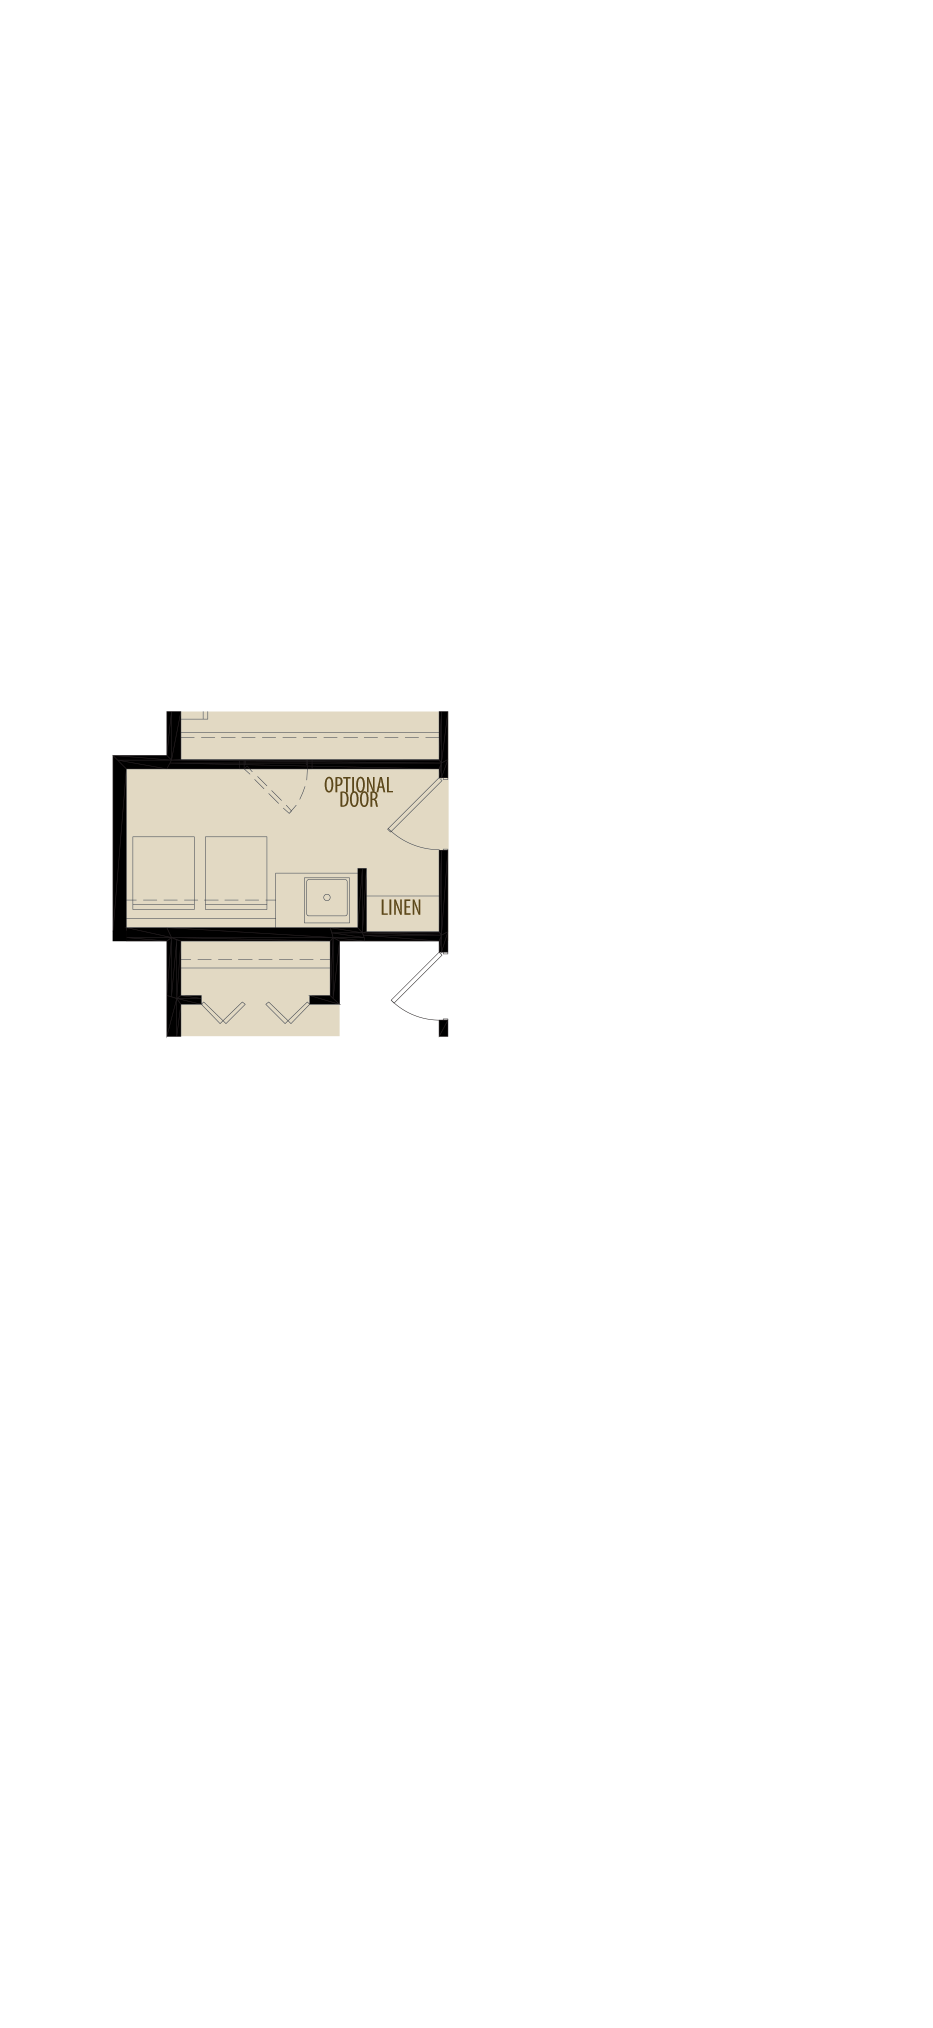 Revised Upper Floor Laundry Adds 14Sq Ft